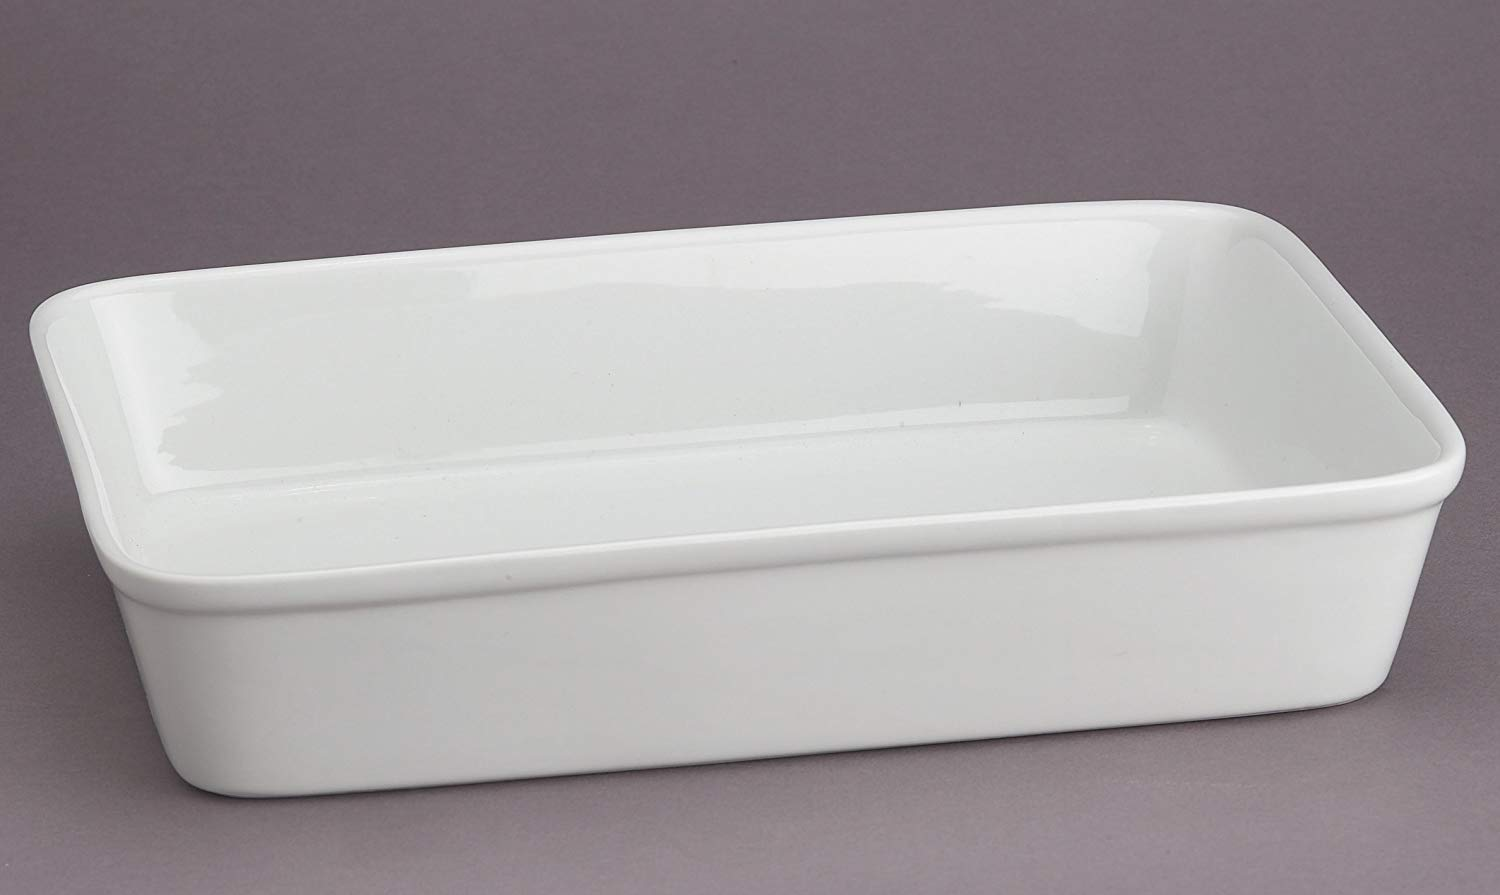 Hic oblong rectangular baking dish roasting lasagna pan